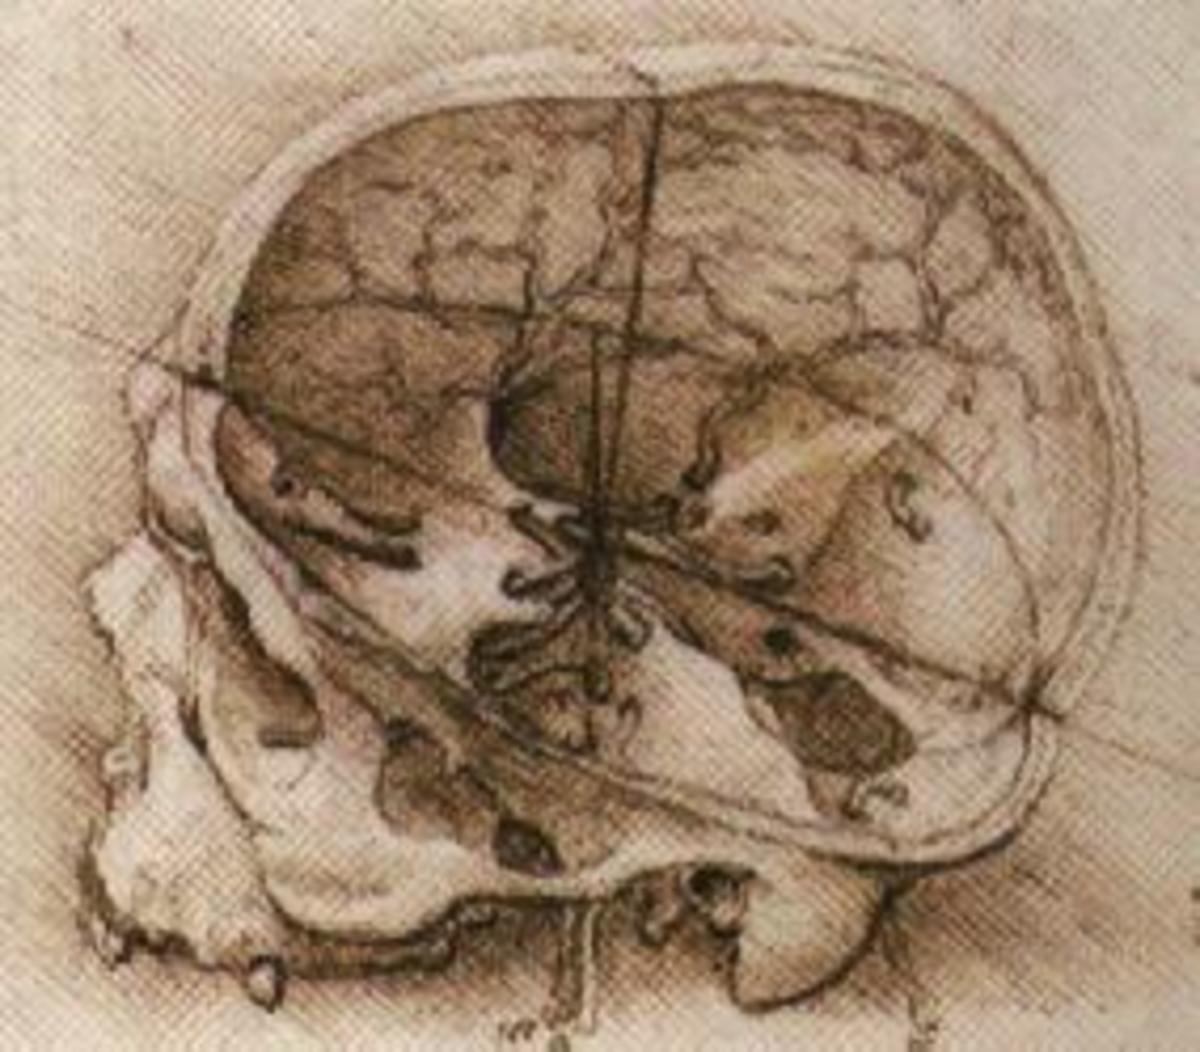 The Anatomy and Physiology Works of Leonardo da Vinci